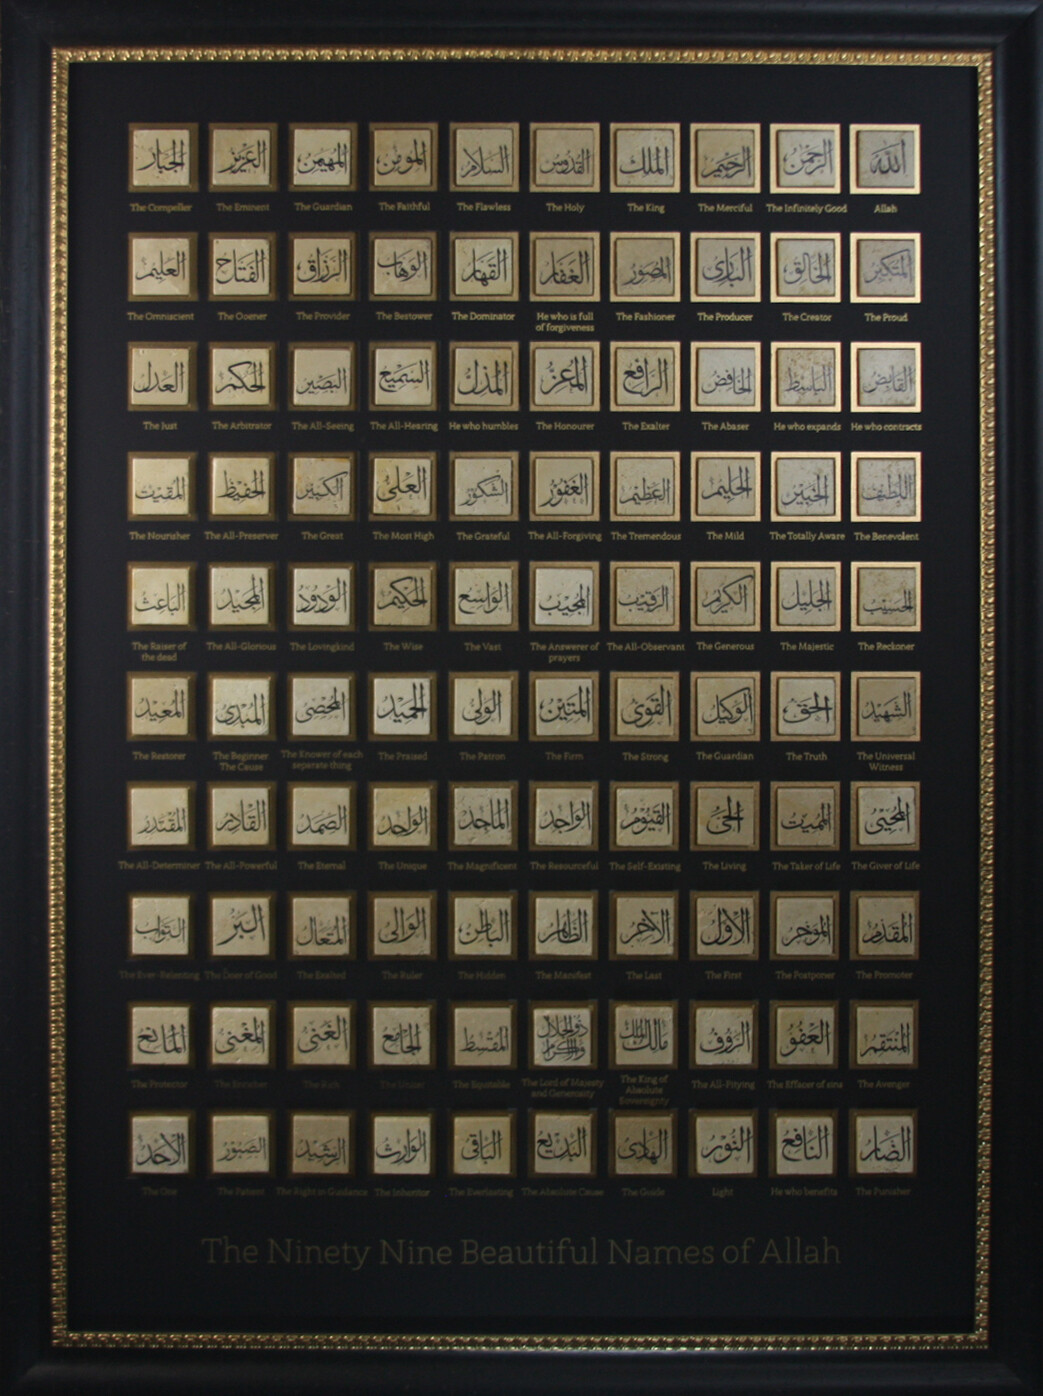 99 Names of Allah in Ex-Large Portrait Black & Gold Design Stone Art